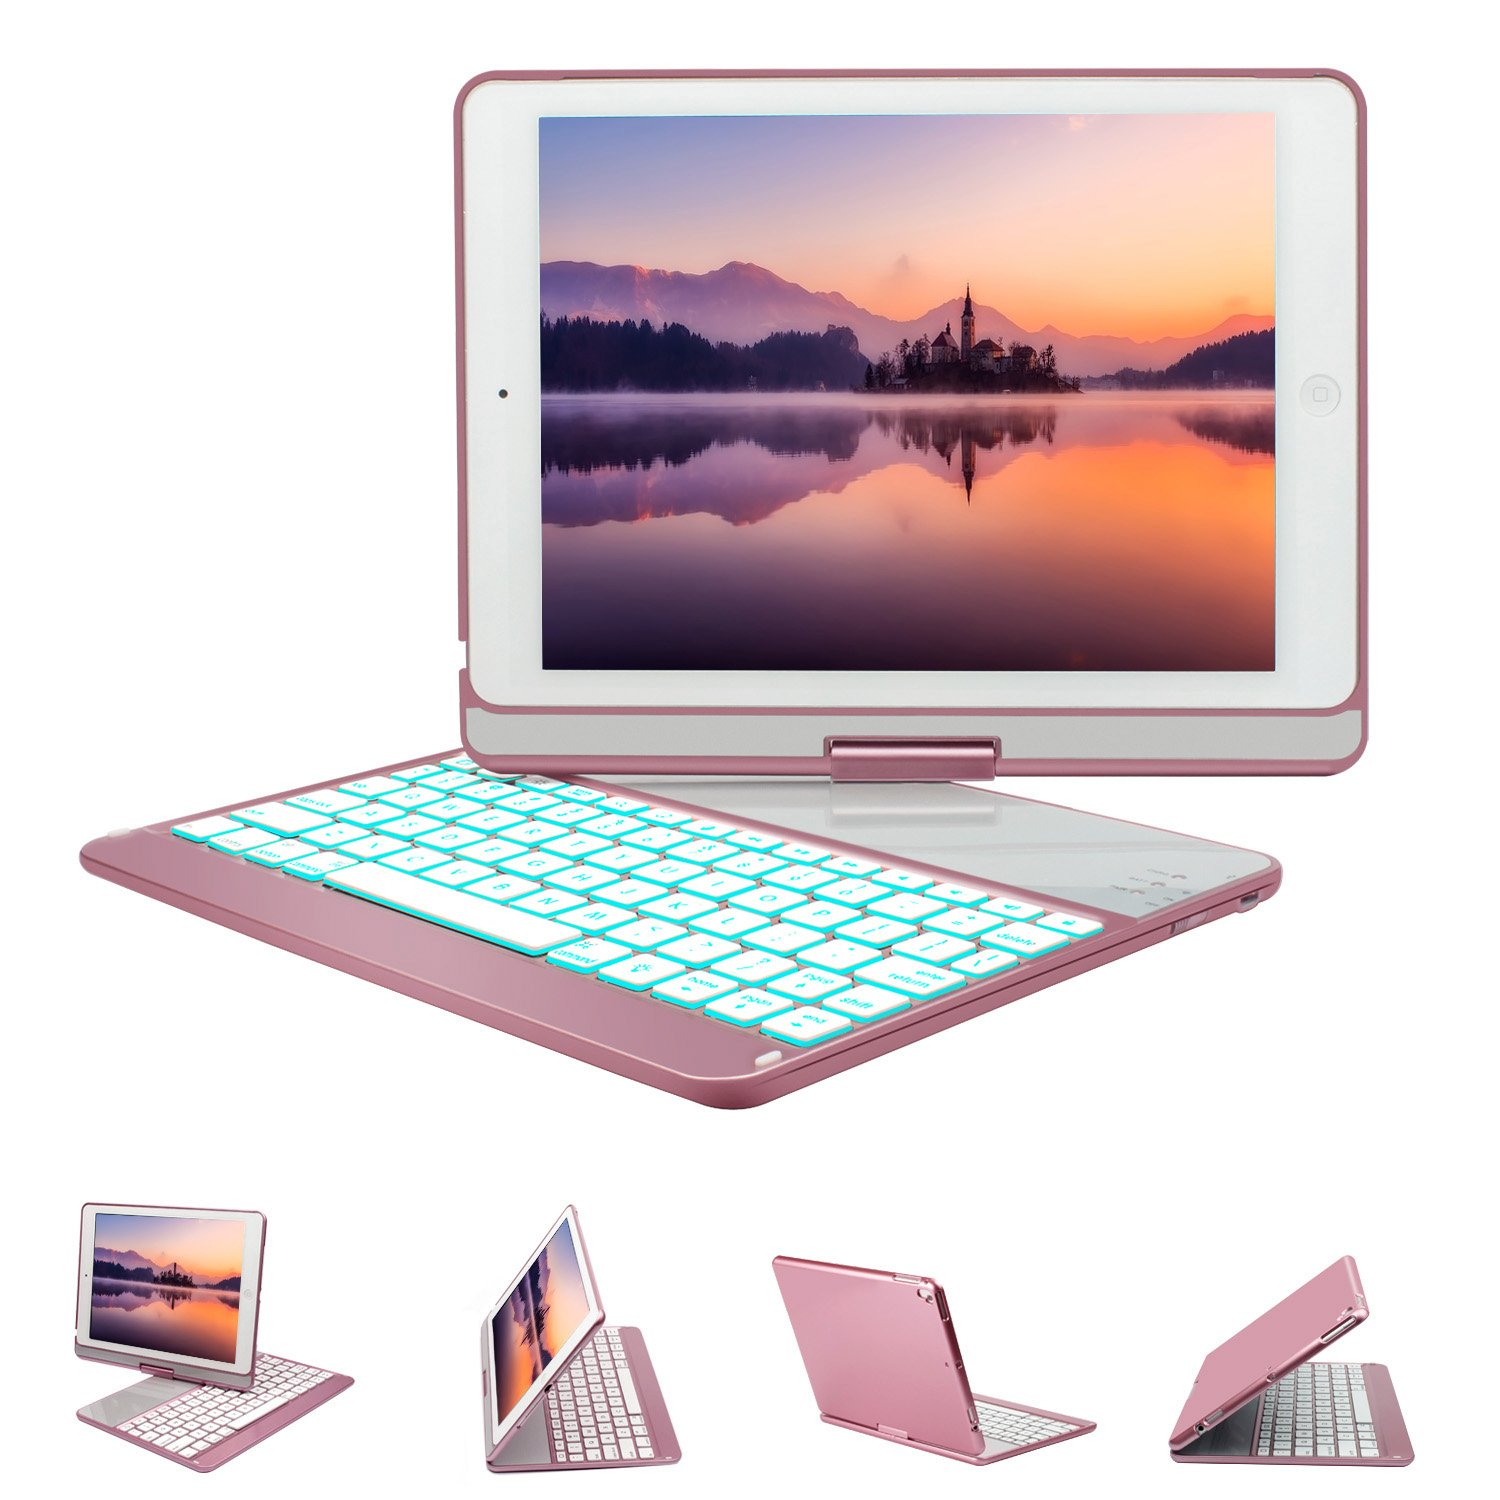 Greenlaw iPad 9.7 Keyboard Case Compatible iPad 2018(6th Gen)/2017(5th Gen)/iPad Pro 9.7/Air 2/Air, 360 Rotate 7 Color Backlit Wireless BT Keyboard Case Cover with Auto Wake/Sleep-Rose Gold